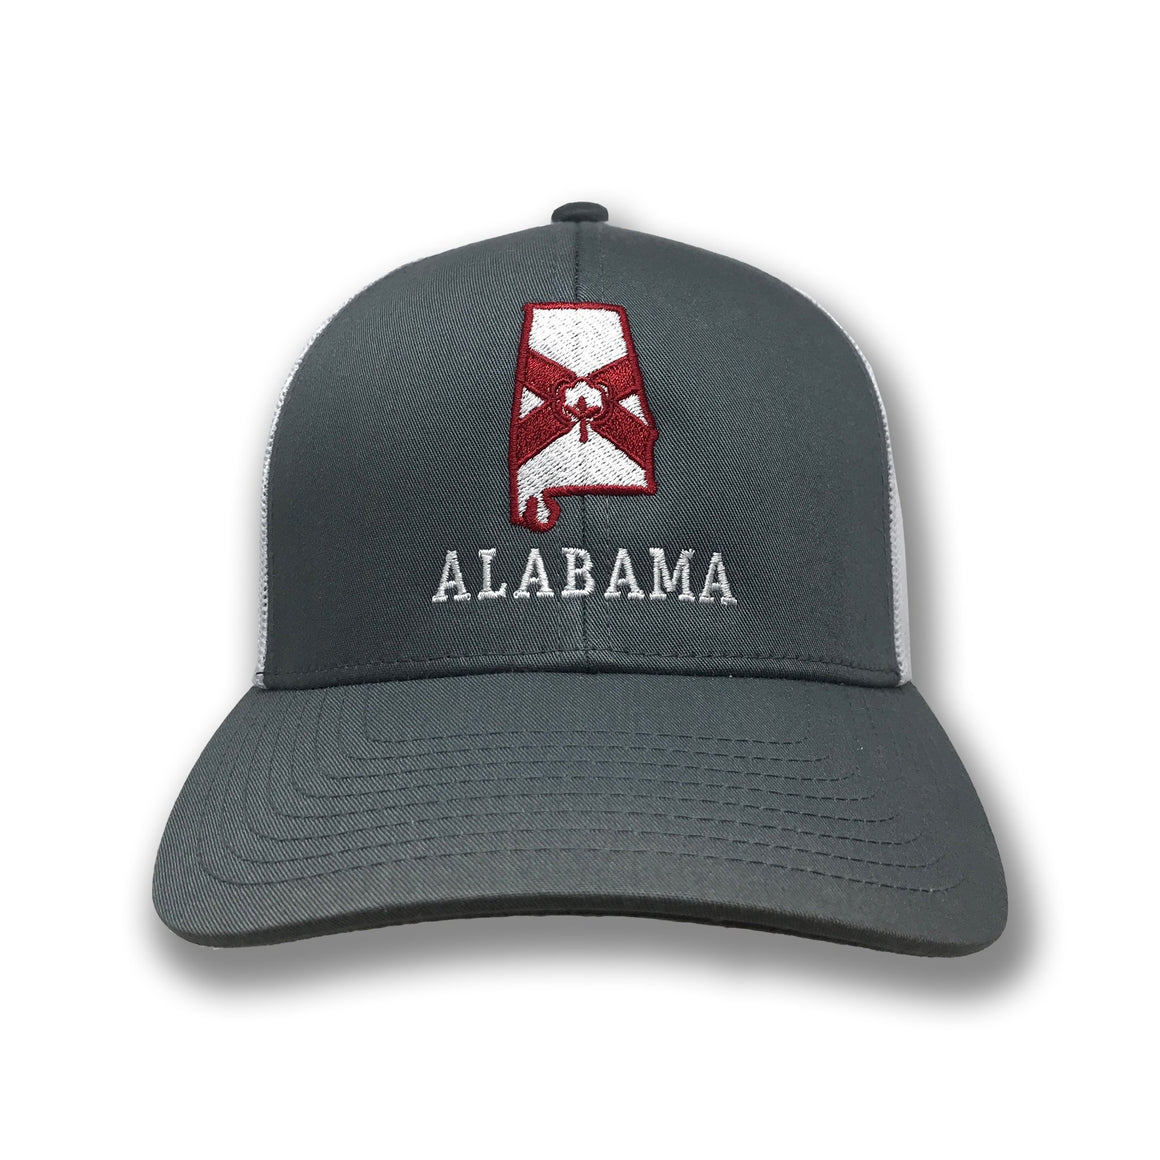 Old State Pride Hats Alabama - Alabama Trucker Hats